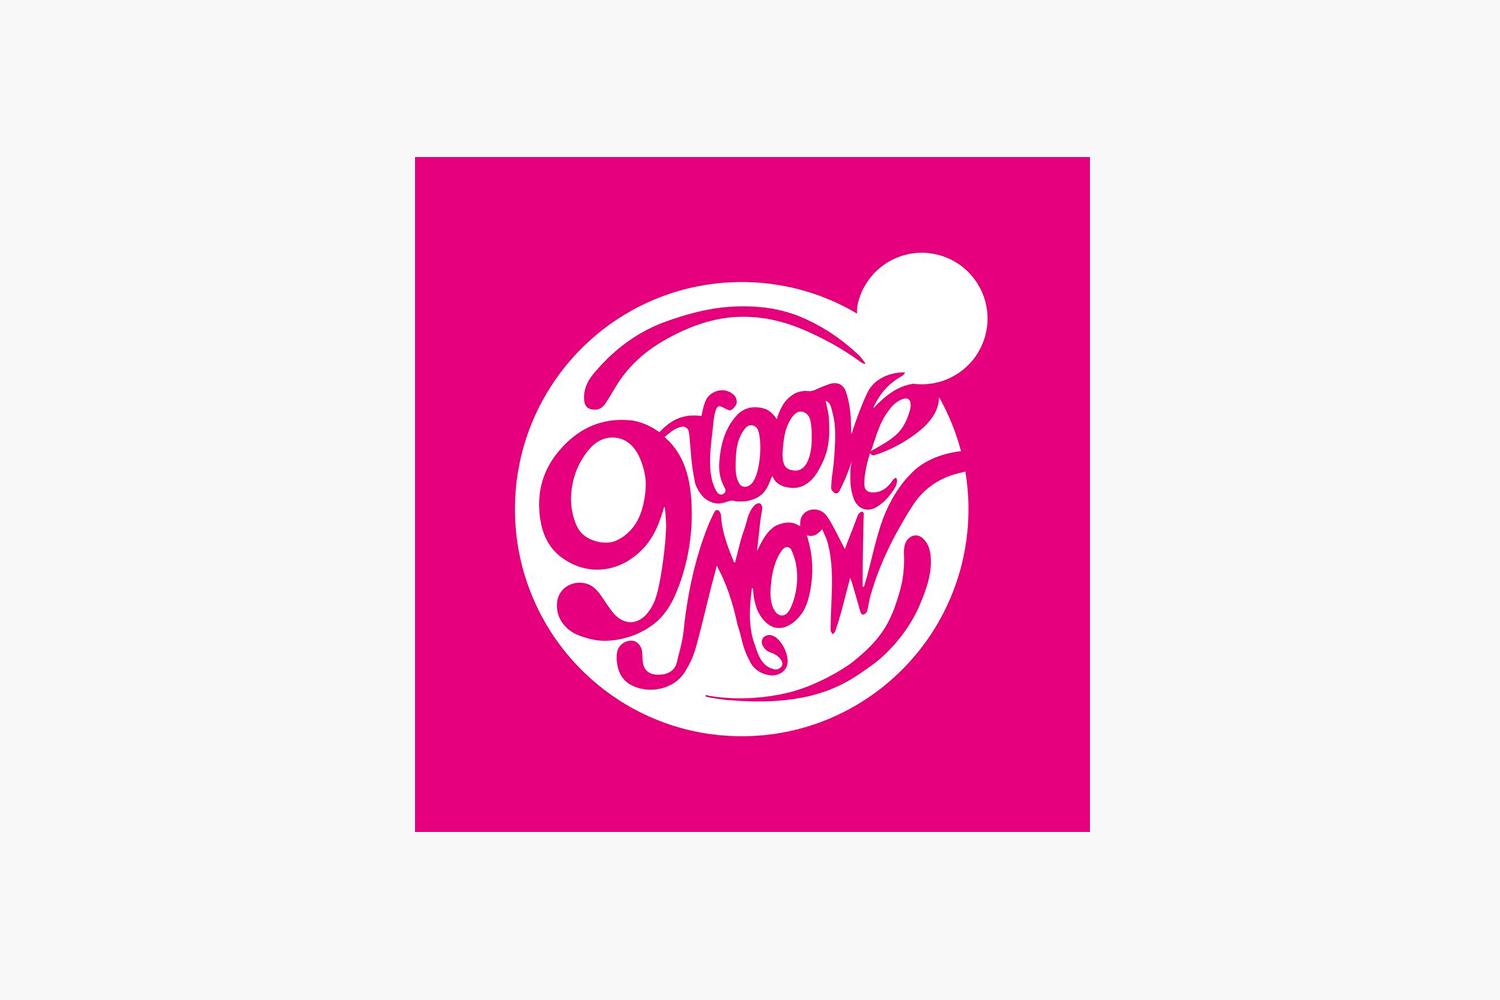 Social Media Marketing für die Konzertreihen von Groove Now